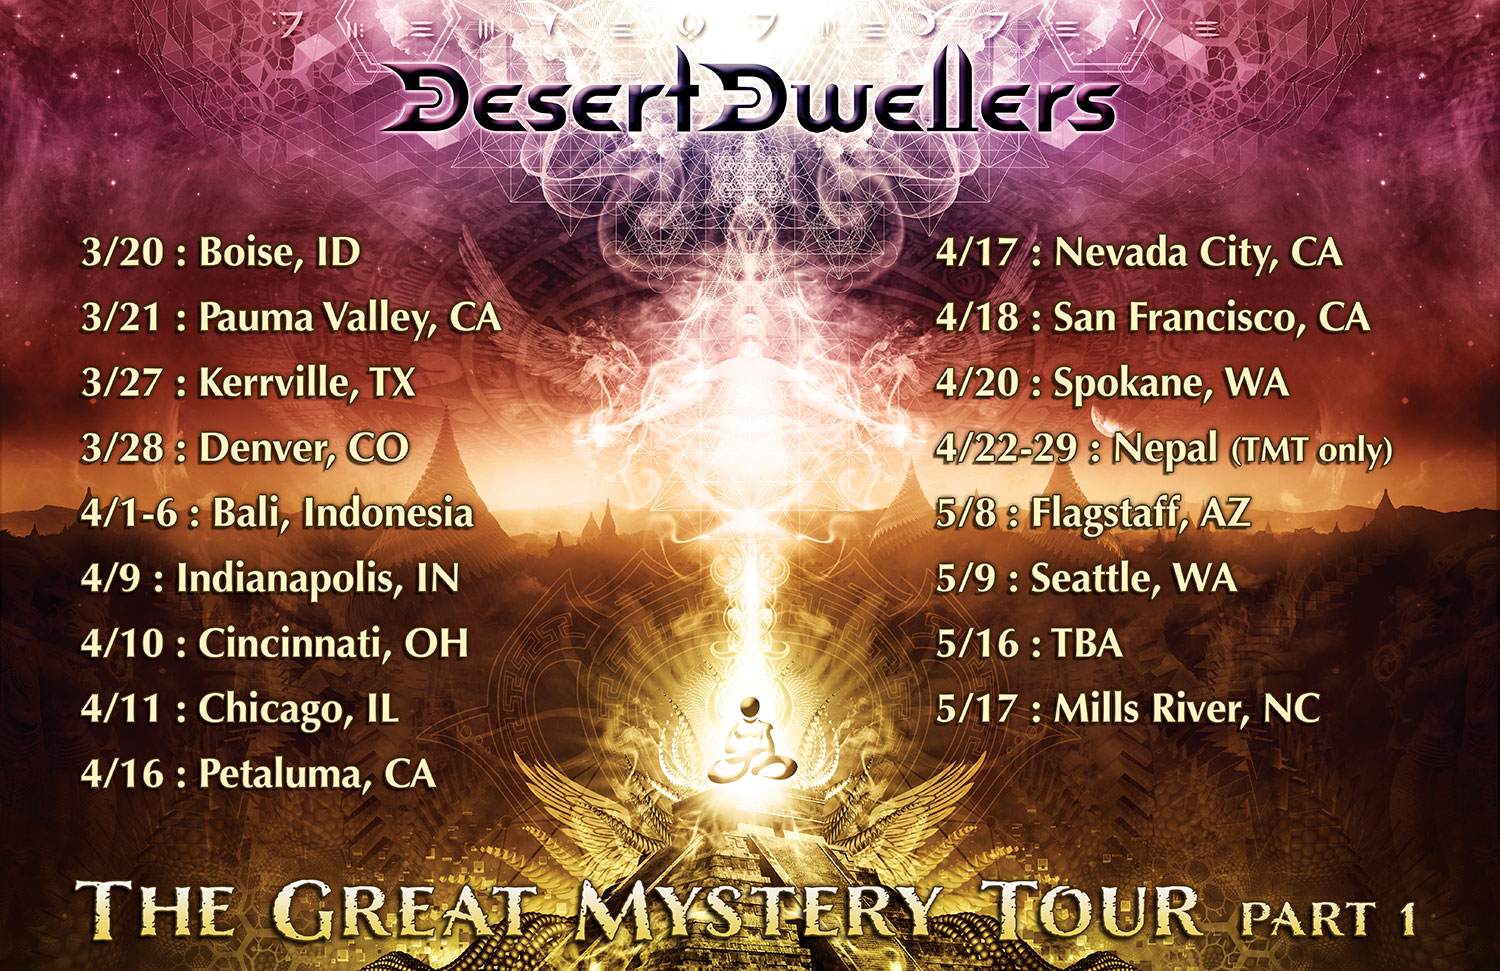 Desert Dwellers - The Great Mystery Tour